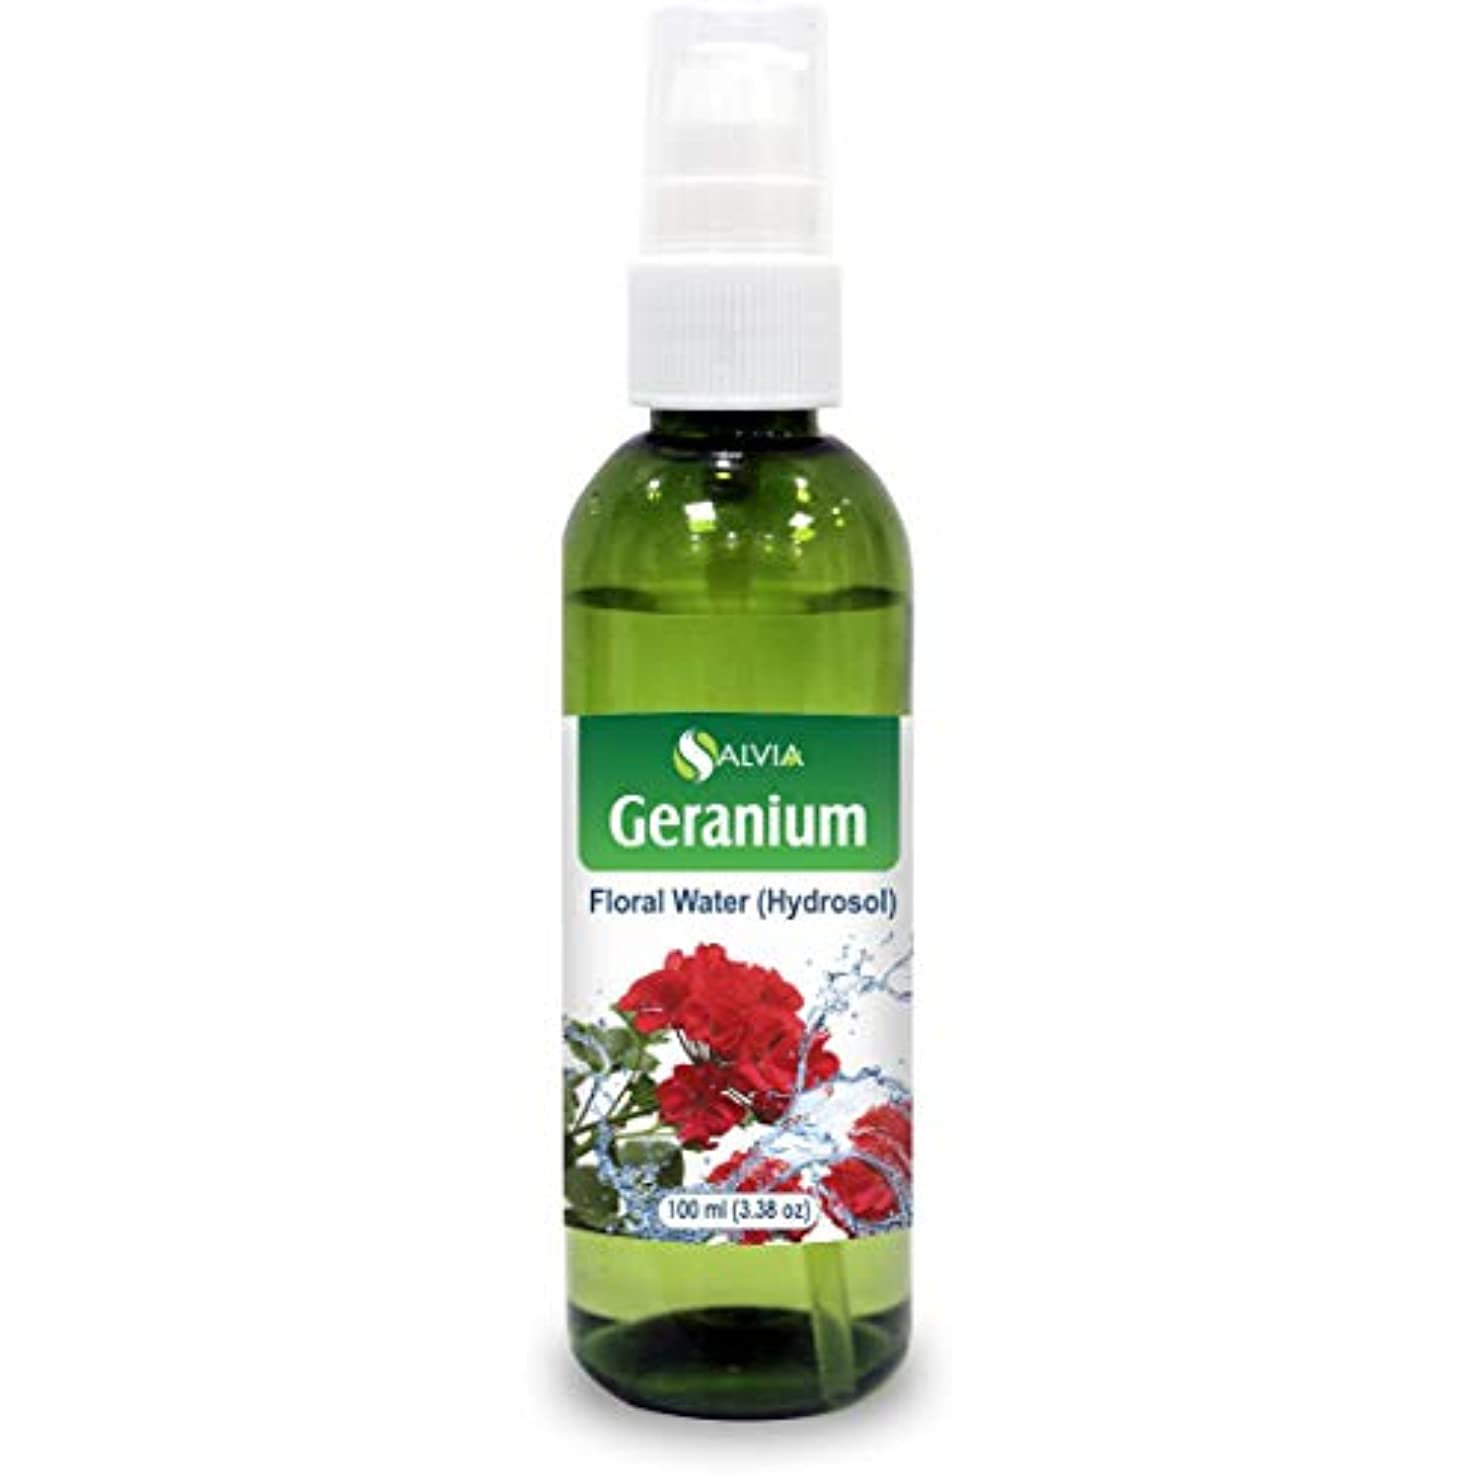 賞ペダルマッシュGeranium Floral Water 100ml (Hydrosol) 100% Pure And Natural